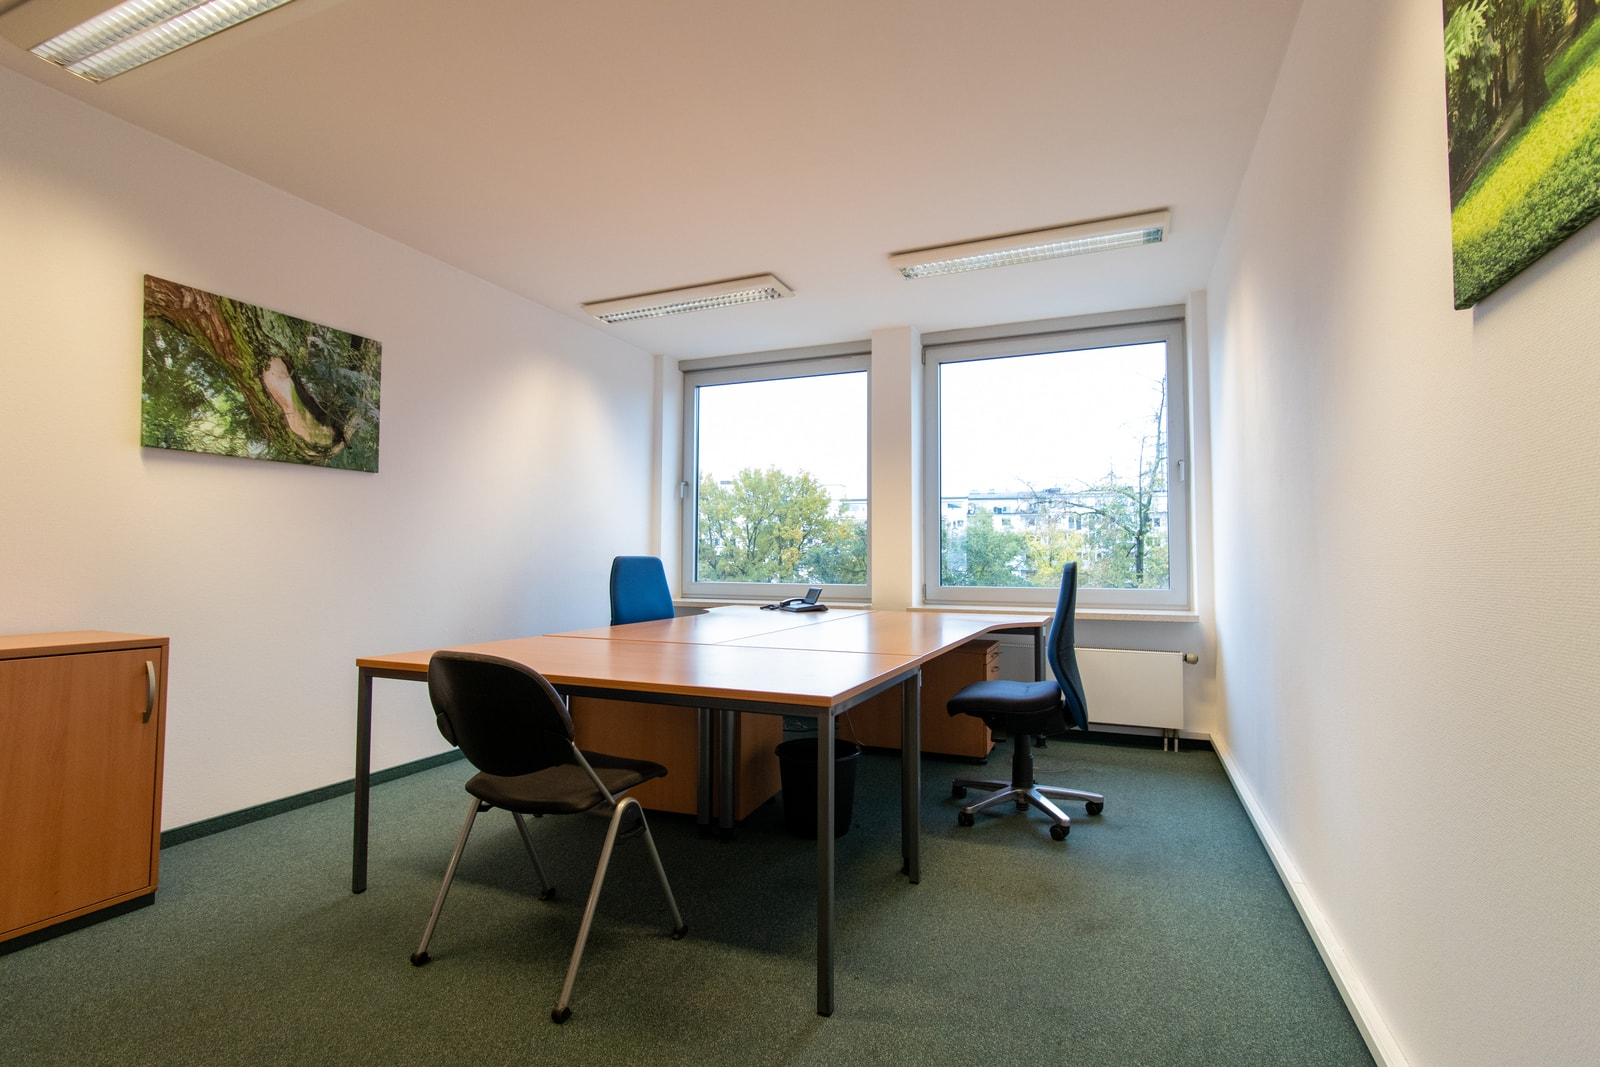 three person office Theodor-Heuss-Ring 23